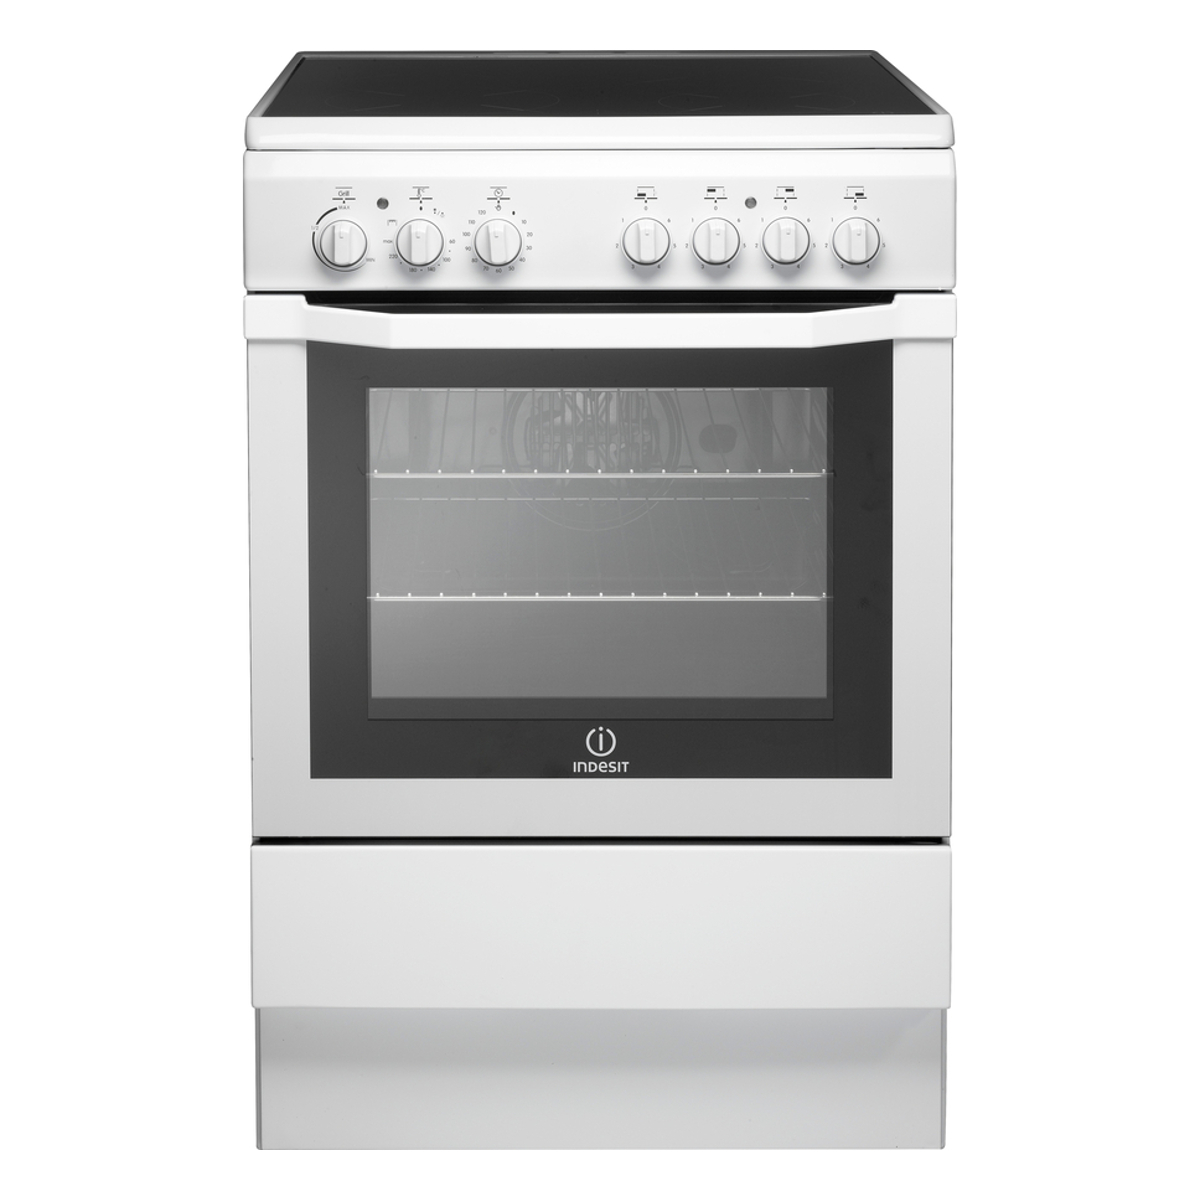 Indesit I6vv2aw Electric Cooker With Ceramic Hob Hughes